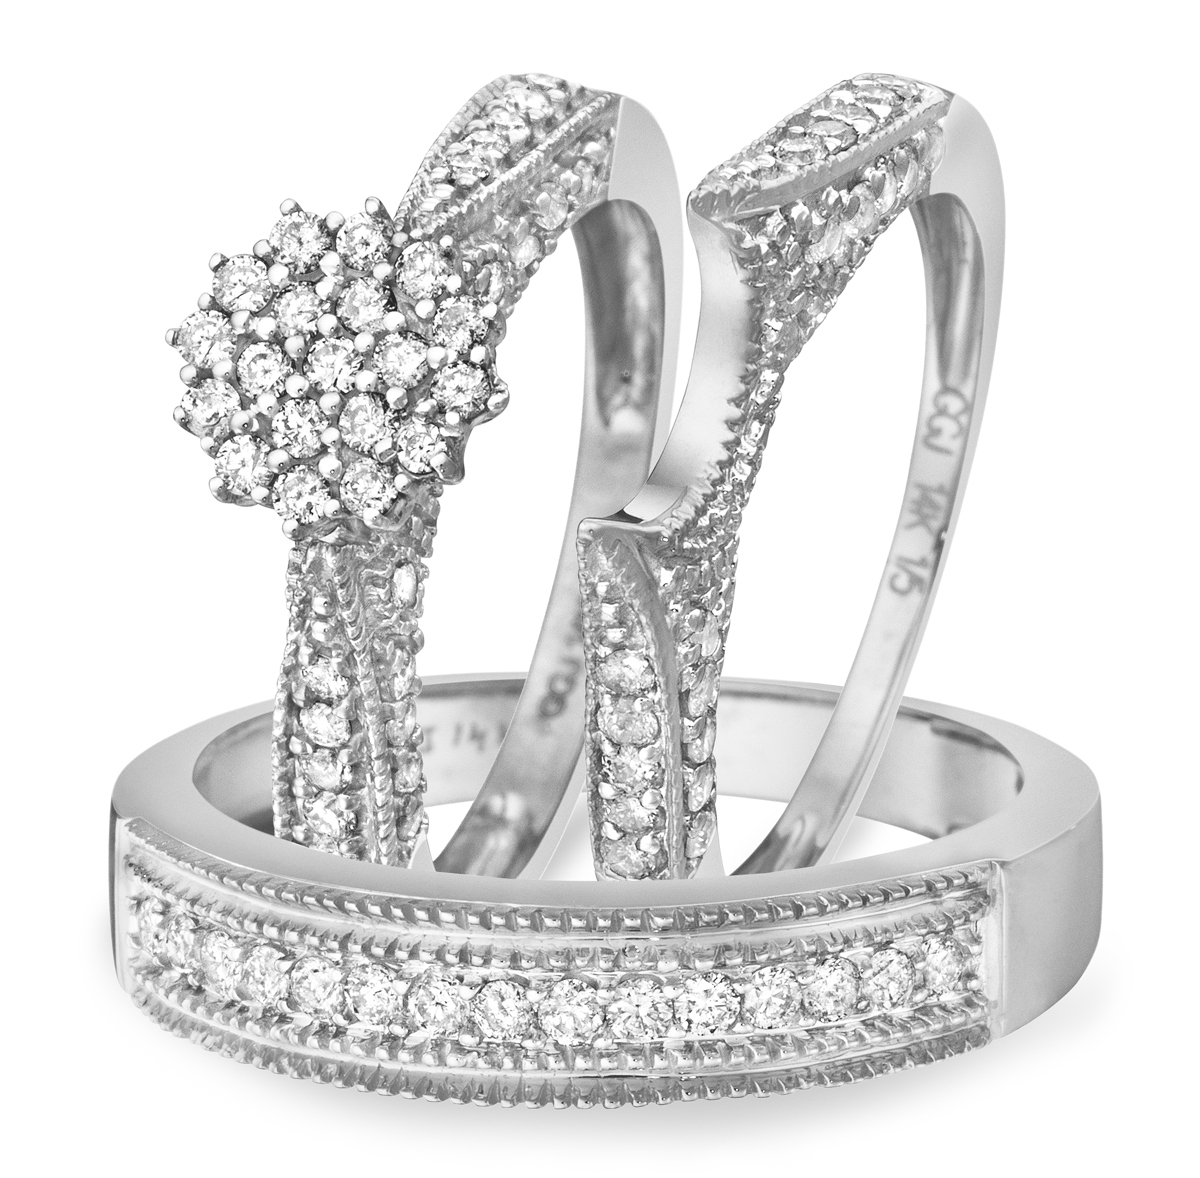 white gold wedding ring sets 1 1 carat diamond trio wedding ring set 14k white gold 1335